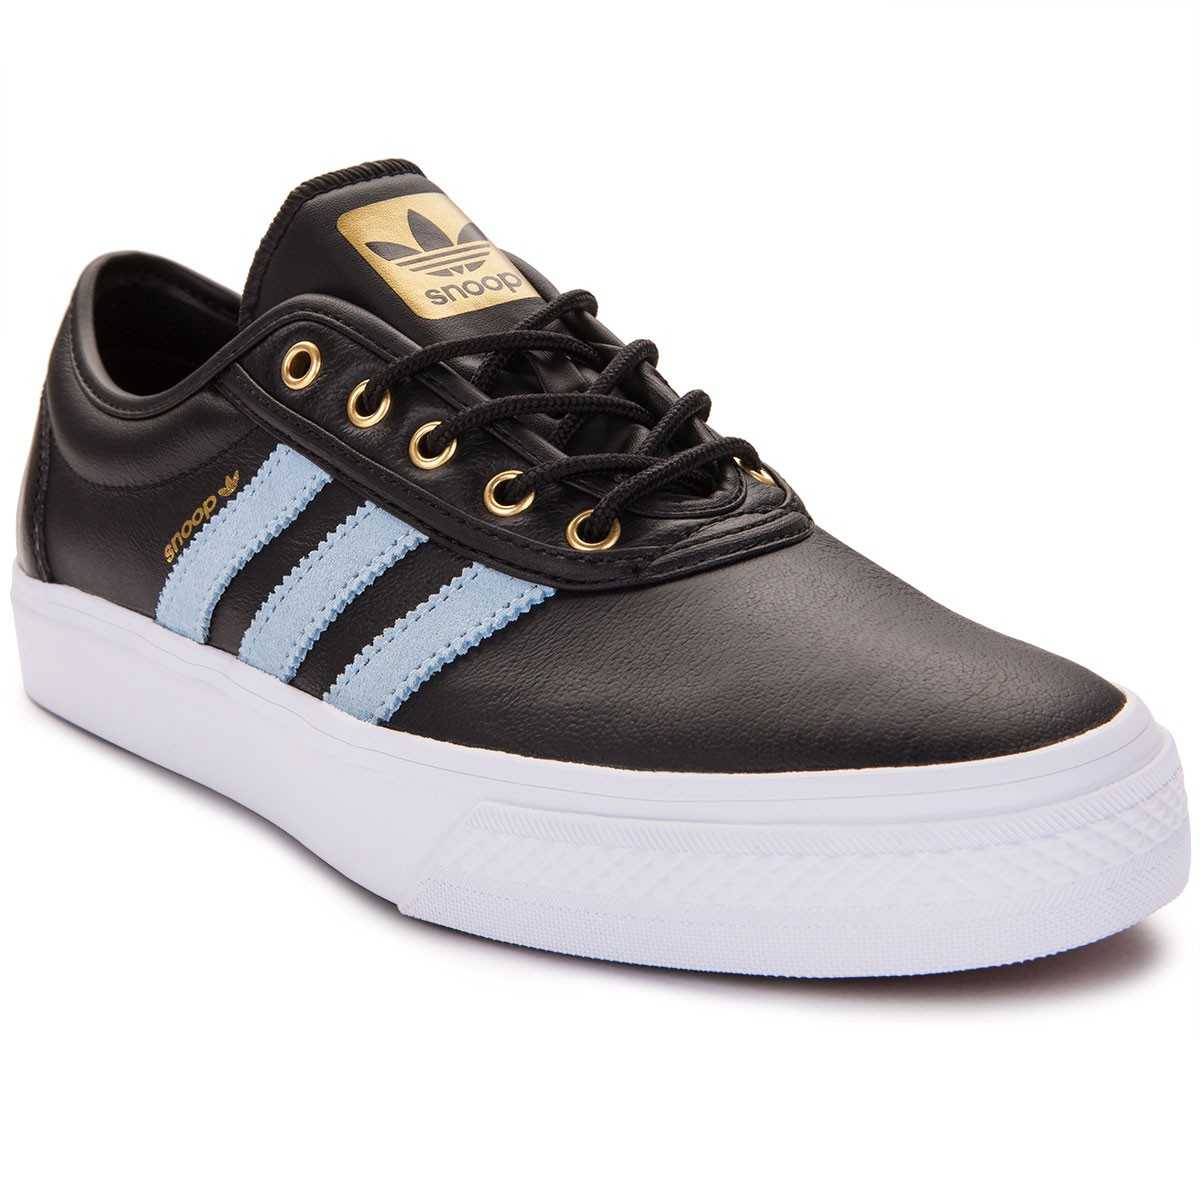 Adidas Snoop adi Ease Shoes - Black/Sky Blue/Gold - 4.0